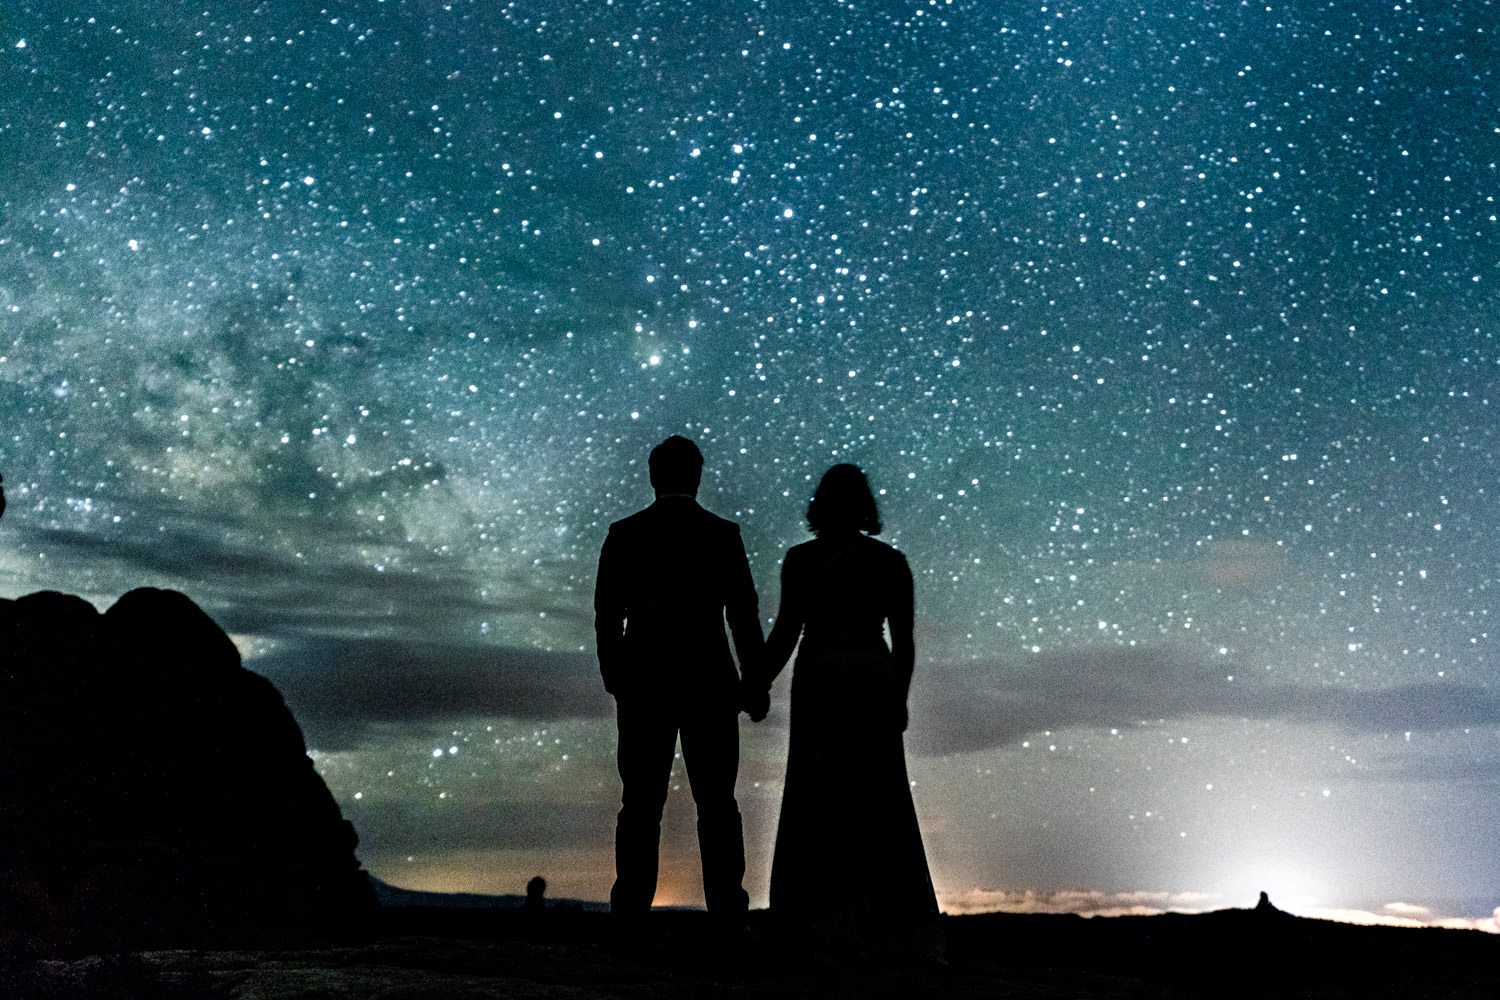 Dead Horse Point elopement silhouette with night sky photo